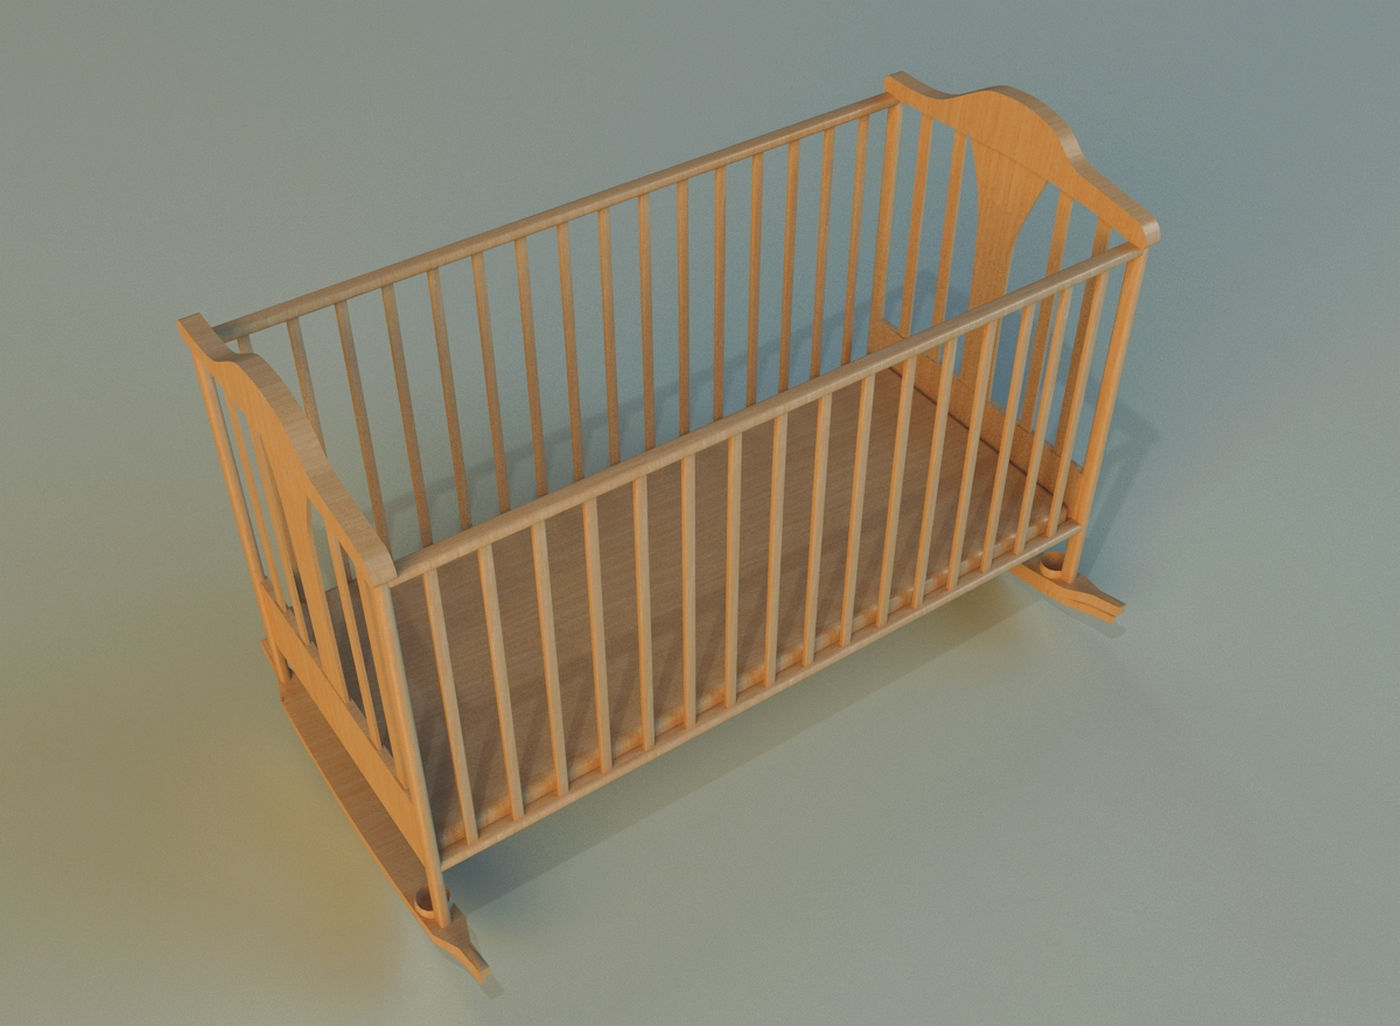 Baby bed pictures -  Cot Baby Bed 3d Model Max Obj 3ds Fbx Mtl 6